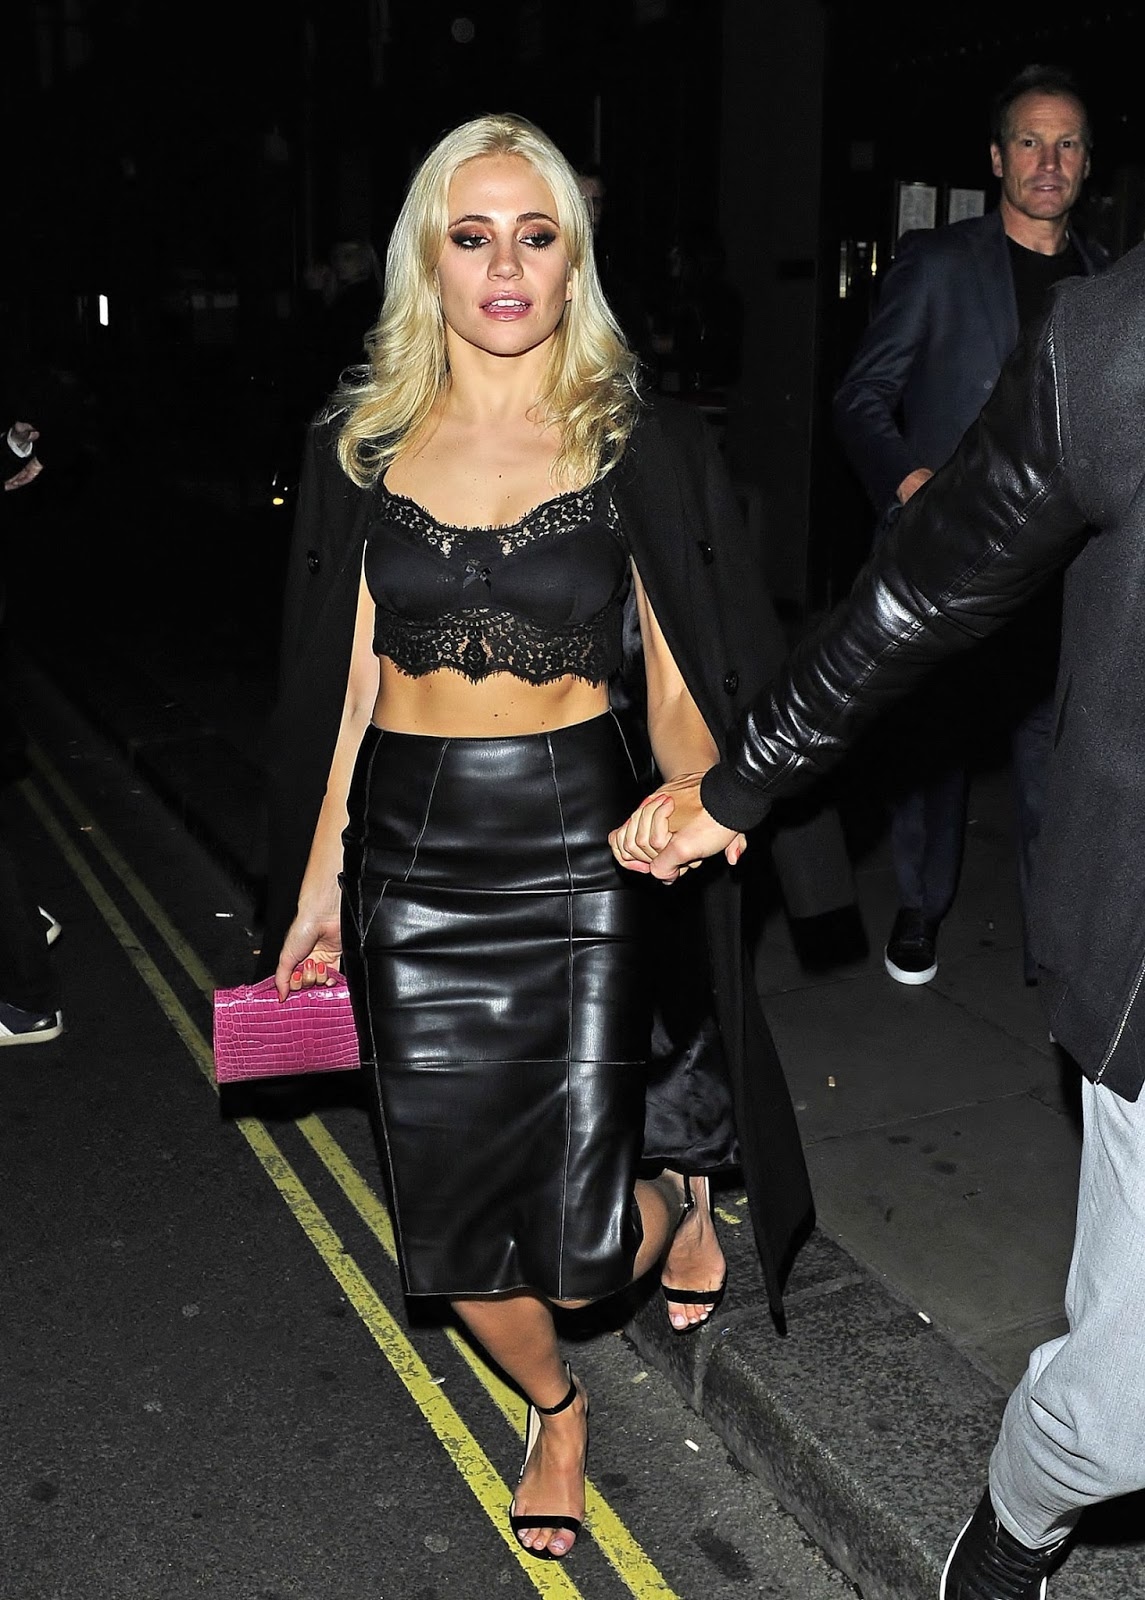 ee7da3b013 British singer & pop star Pixie Lott wearing a black leather pencil skirt  (while stumbling out of a nightclub and looking quite wasted!)